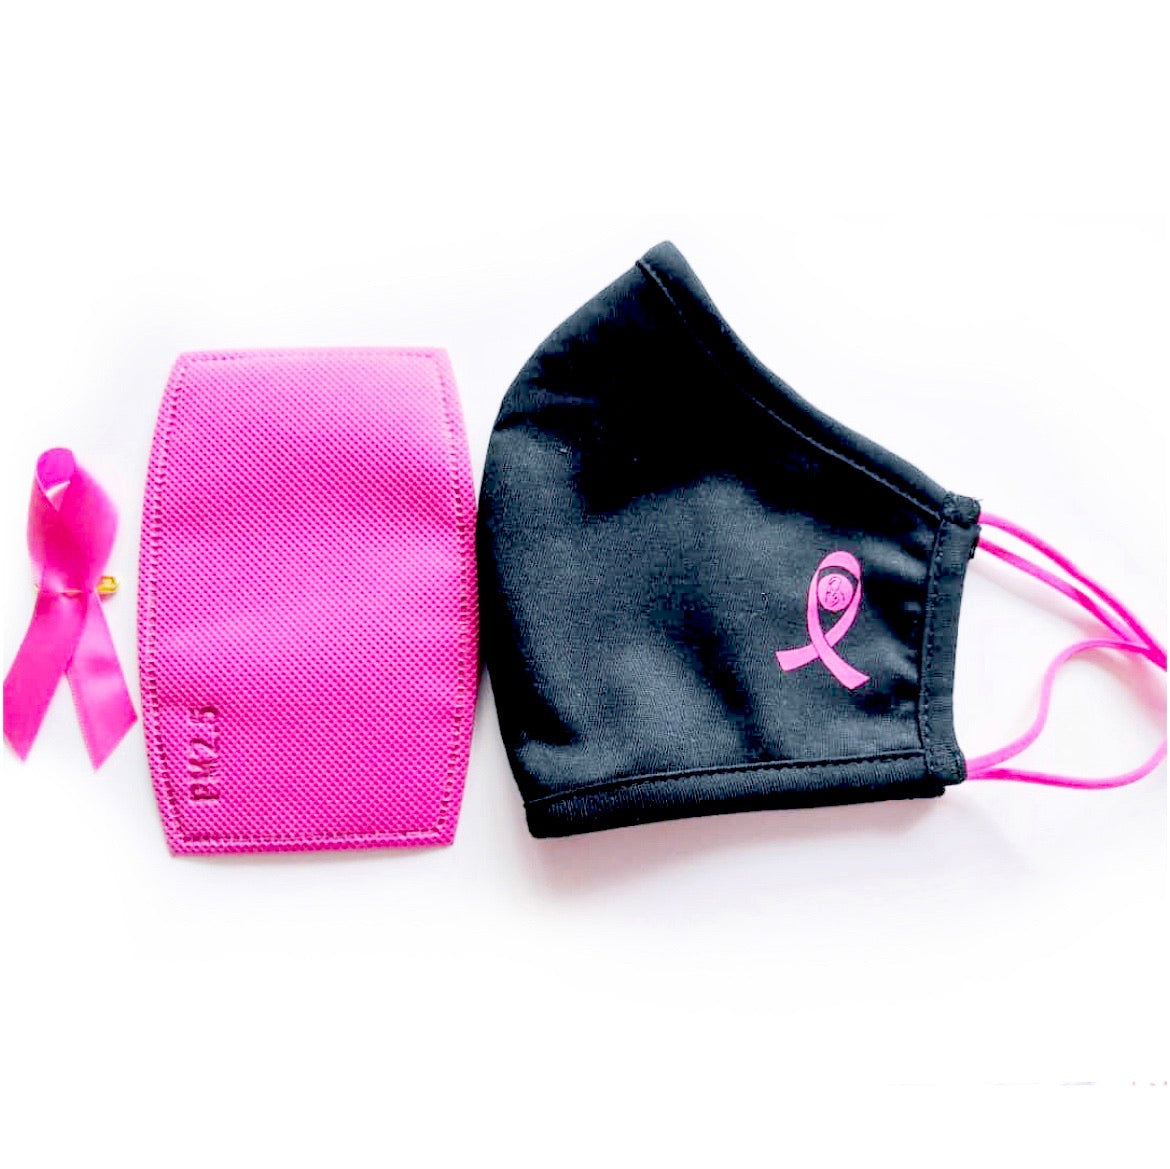 3 Layer Organic Cotton Breast Cancer Pink Ribbon Face Mask With Filter Set